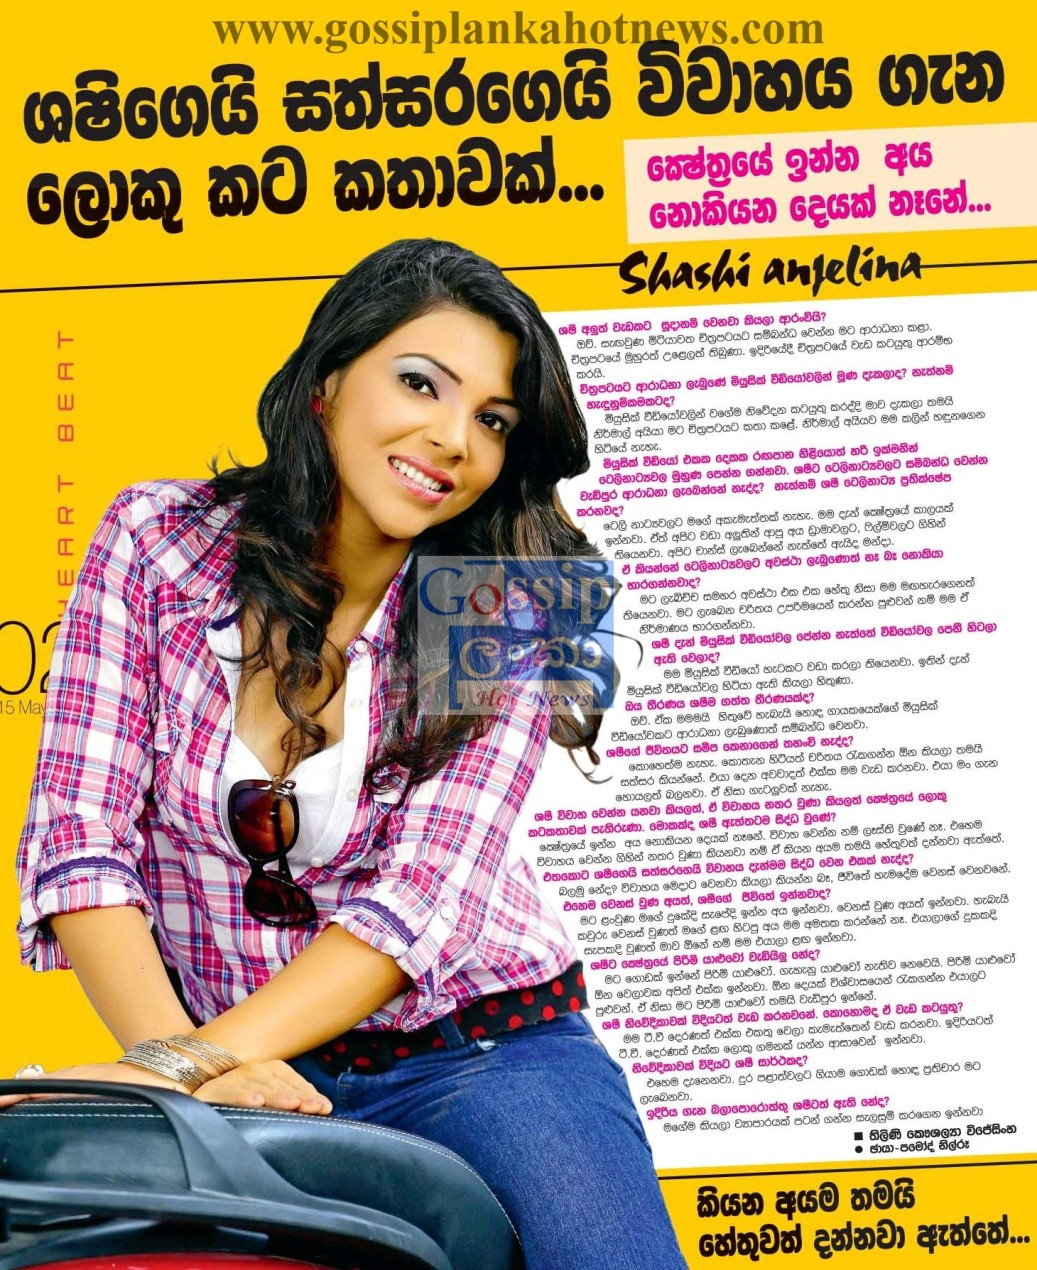 chat with sri lankan actress Shashi Anjelina